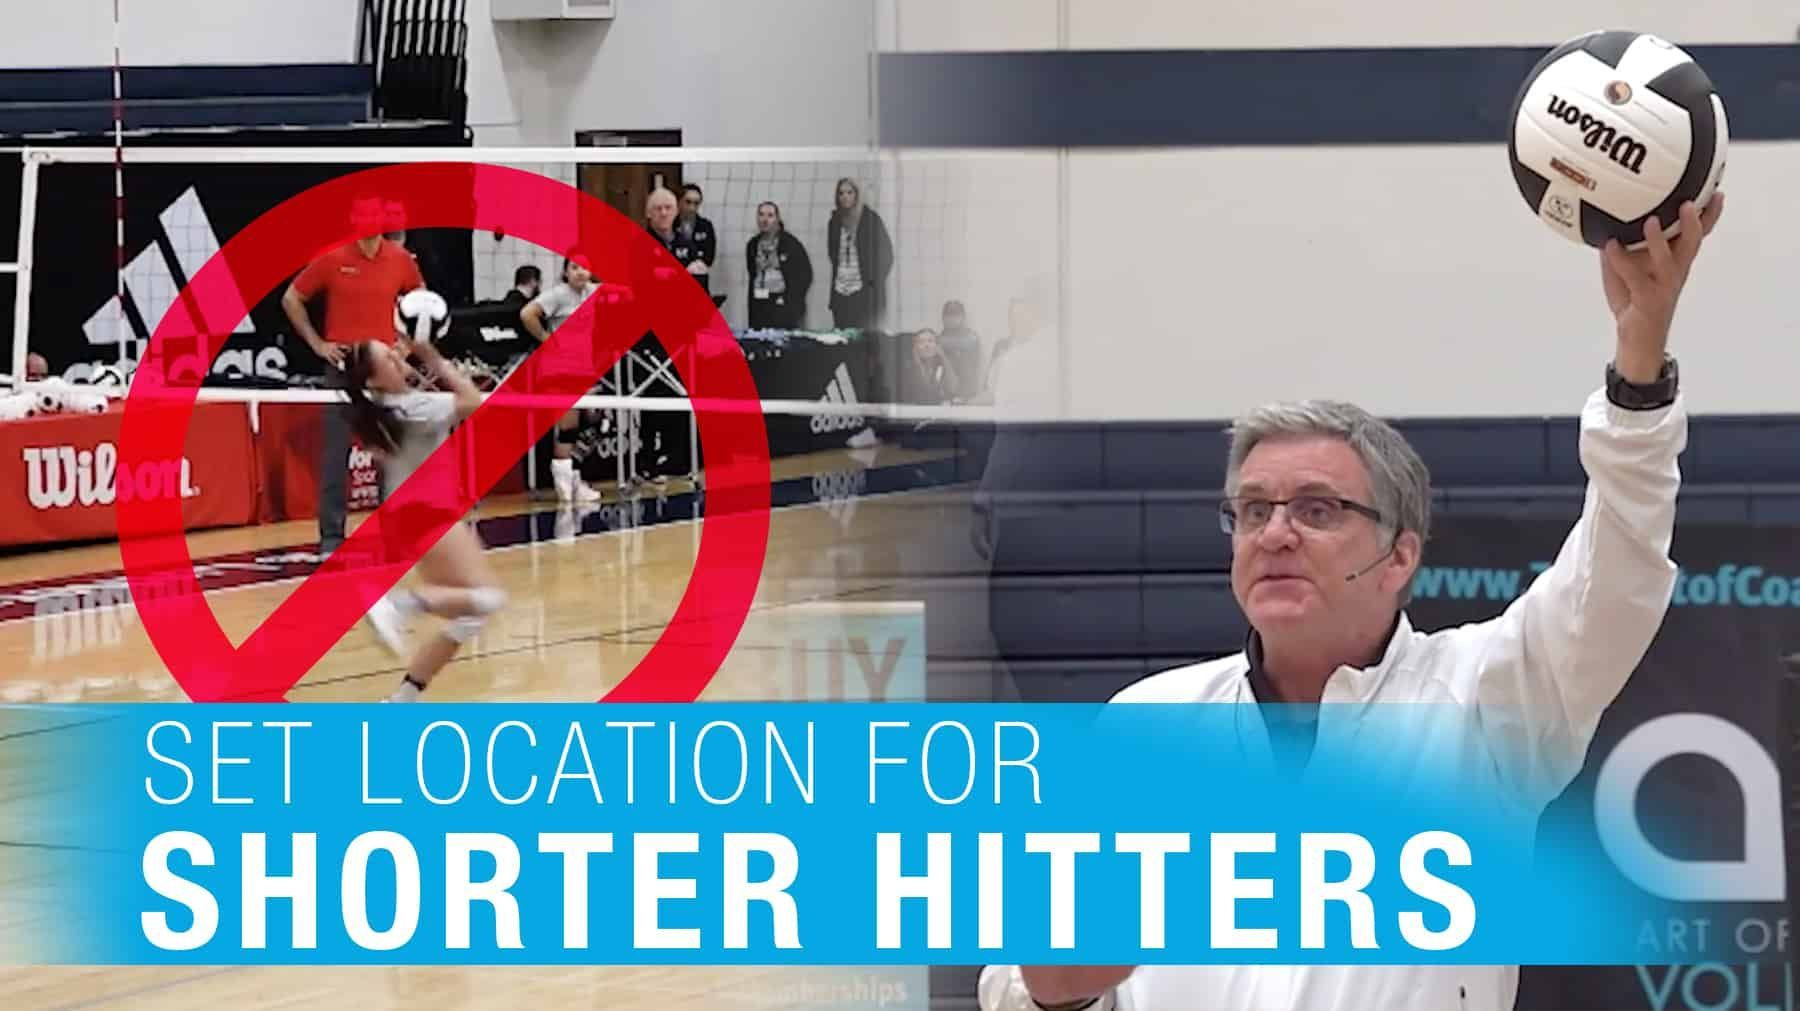 Set Location For Shorter Hitters With Images Coaching Volleyball